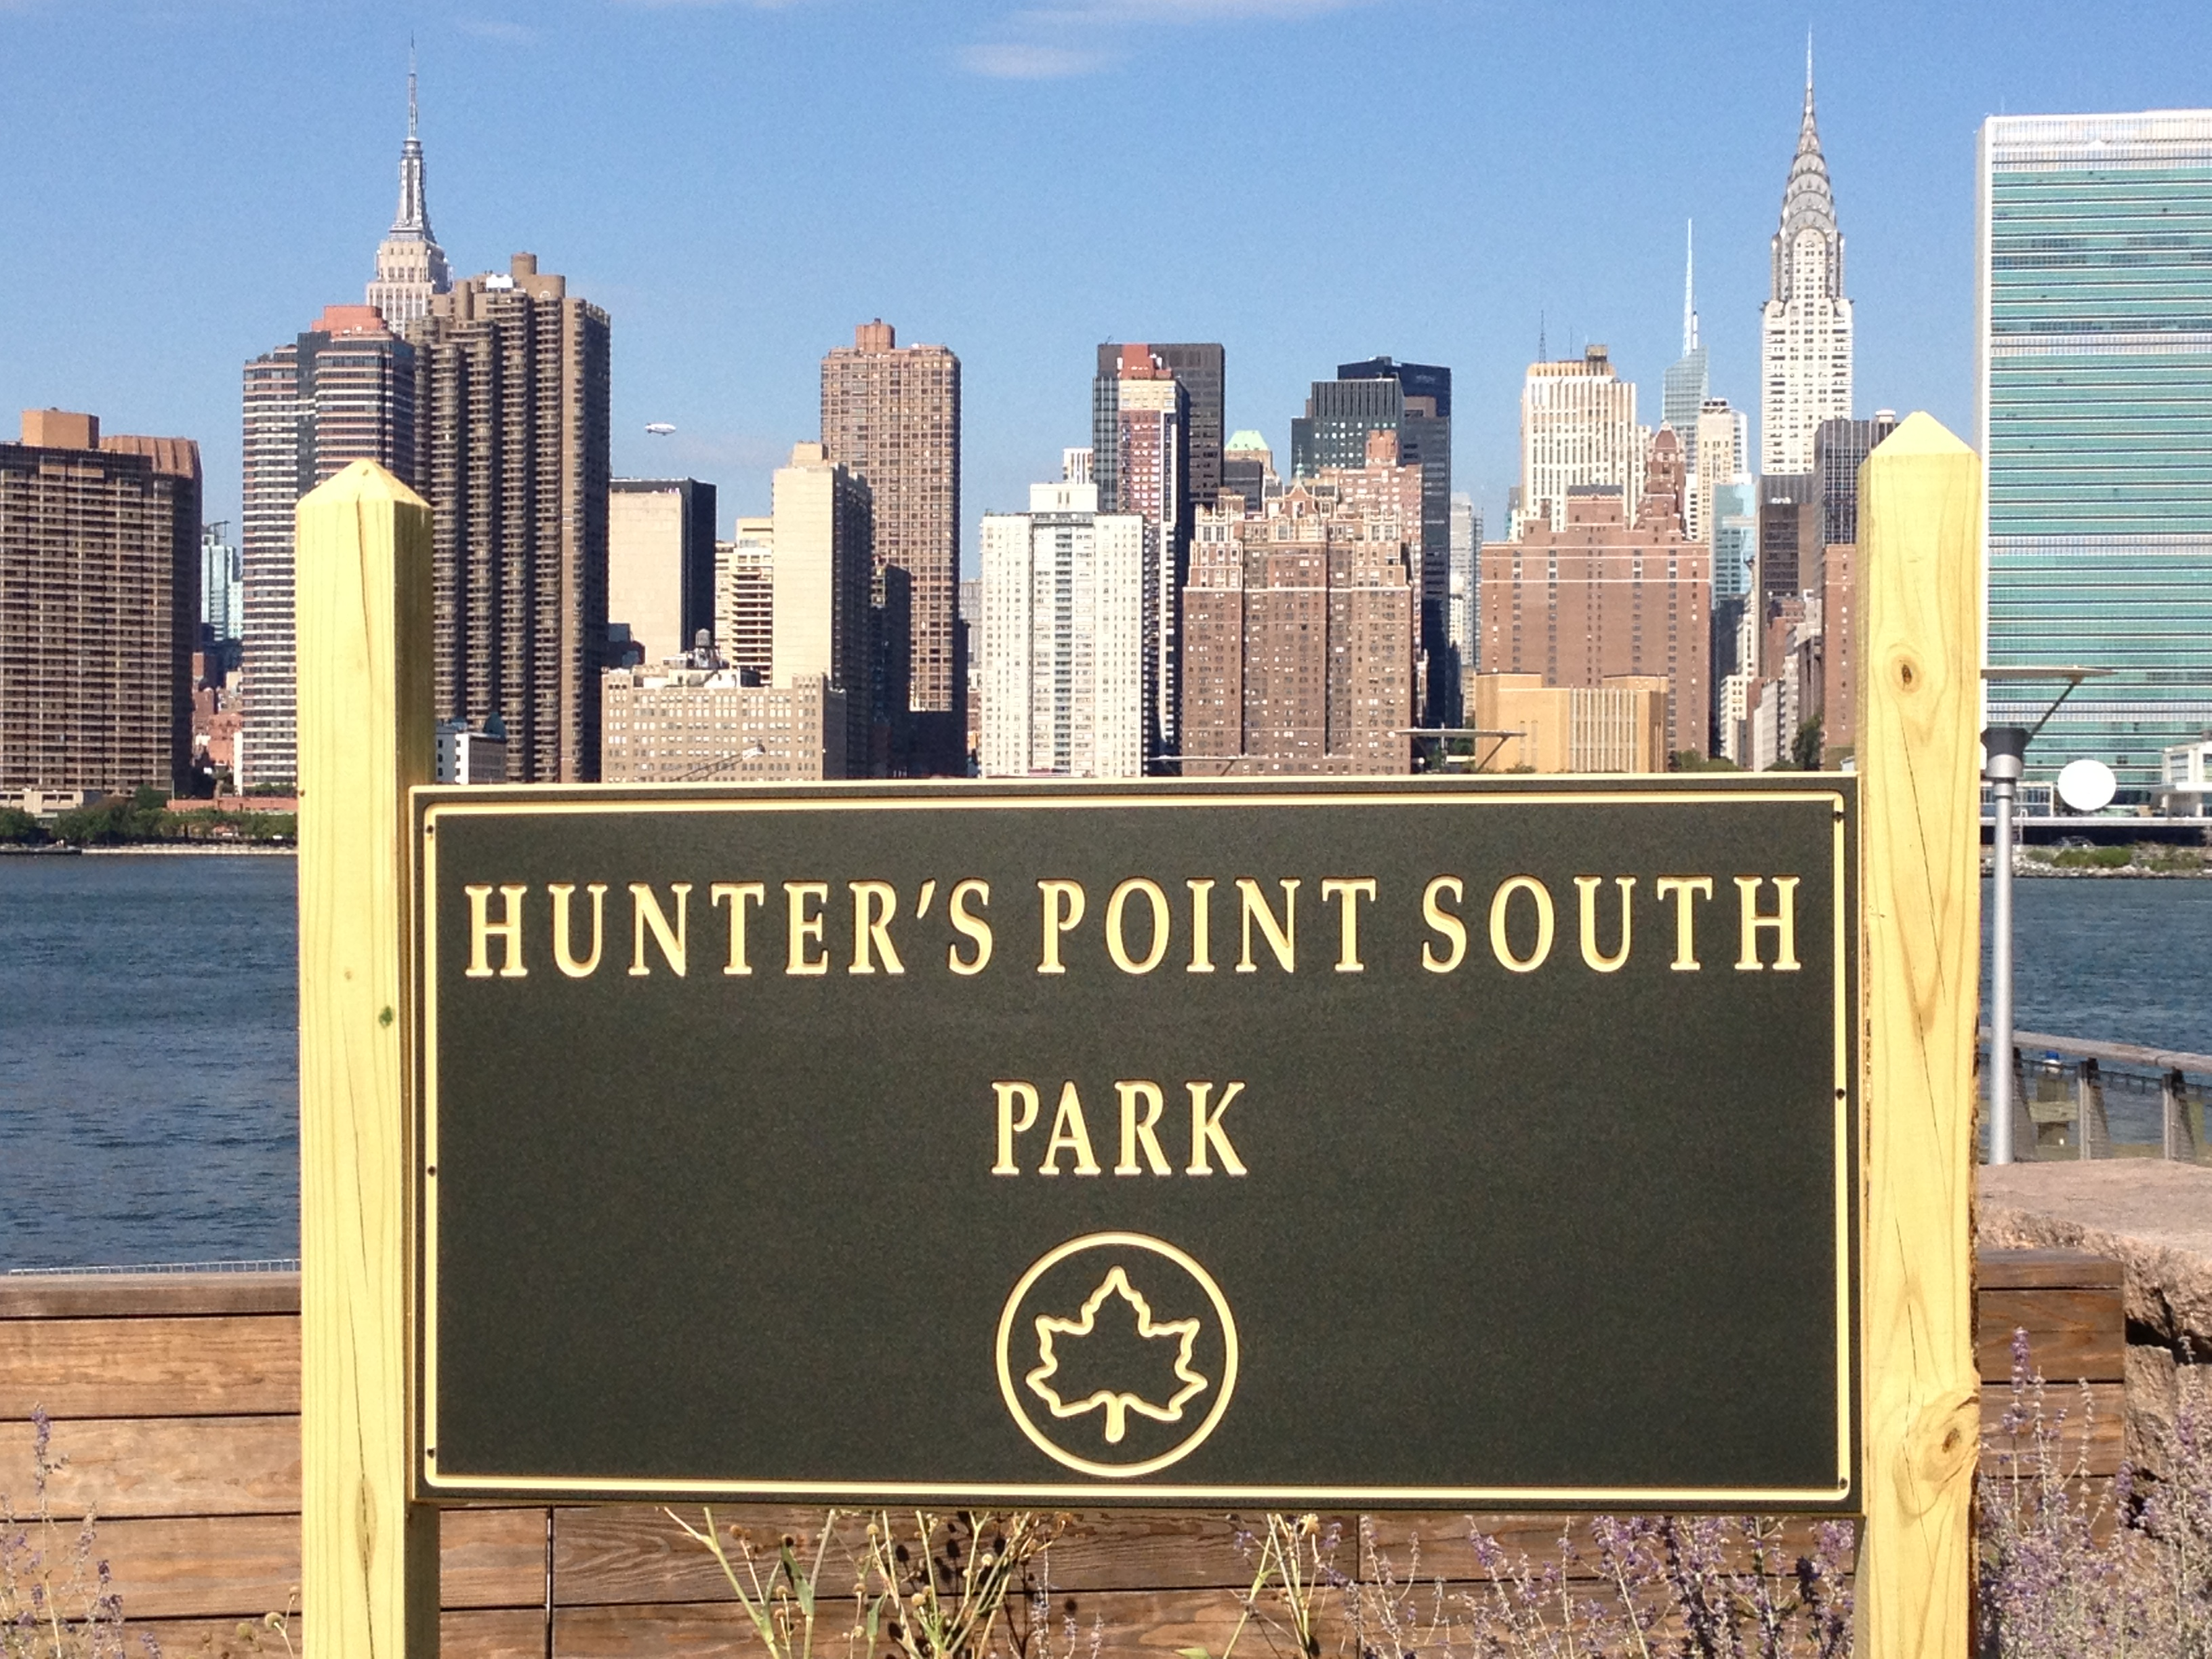 Hunter's Point - Great waterfront location in LIC for viewing the New York skyline